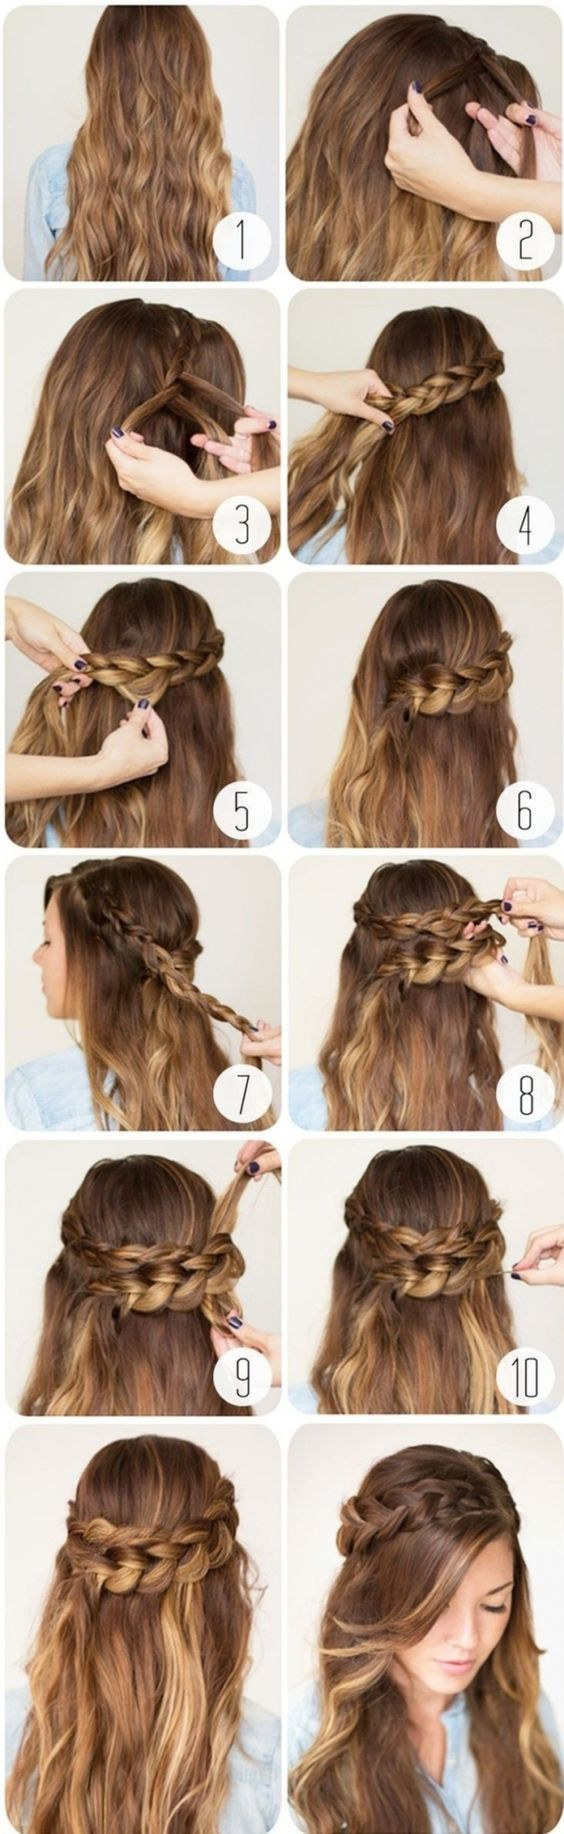 Graduation Hairstyles & Outfit Tips